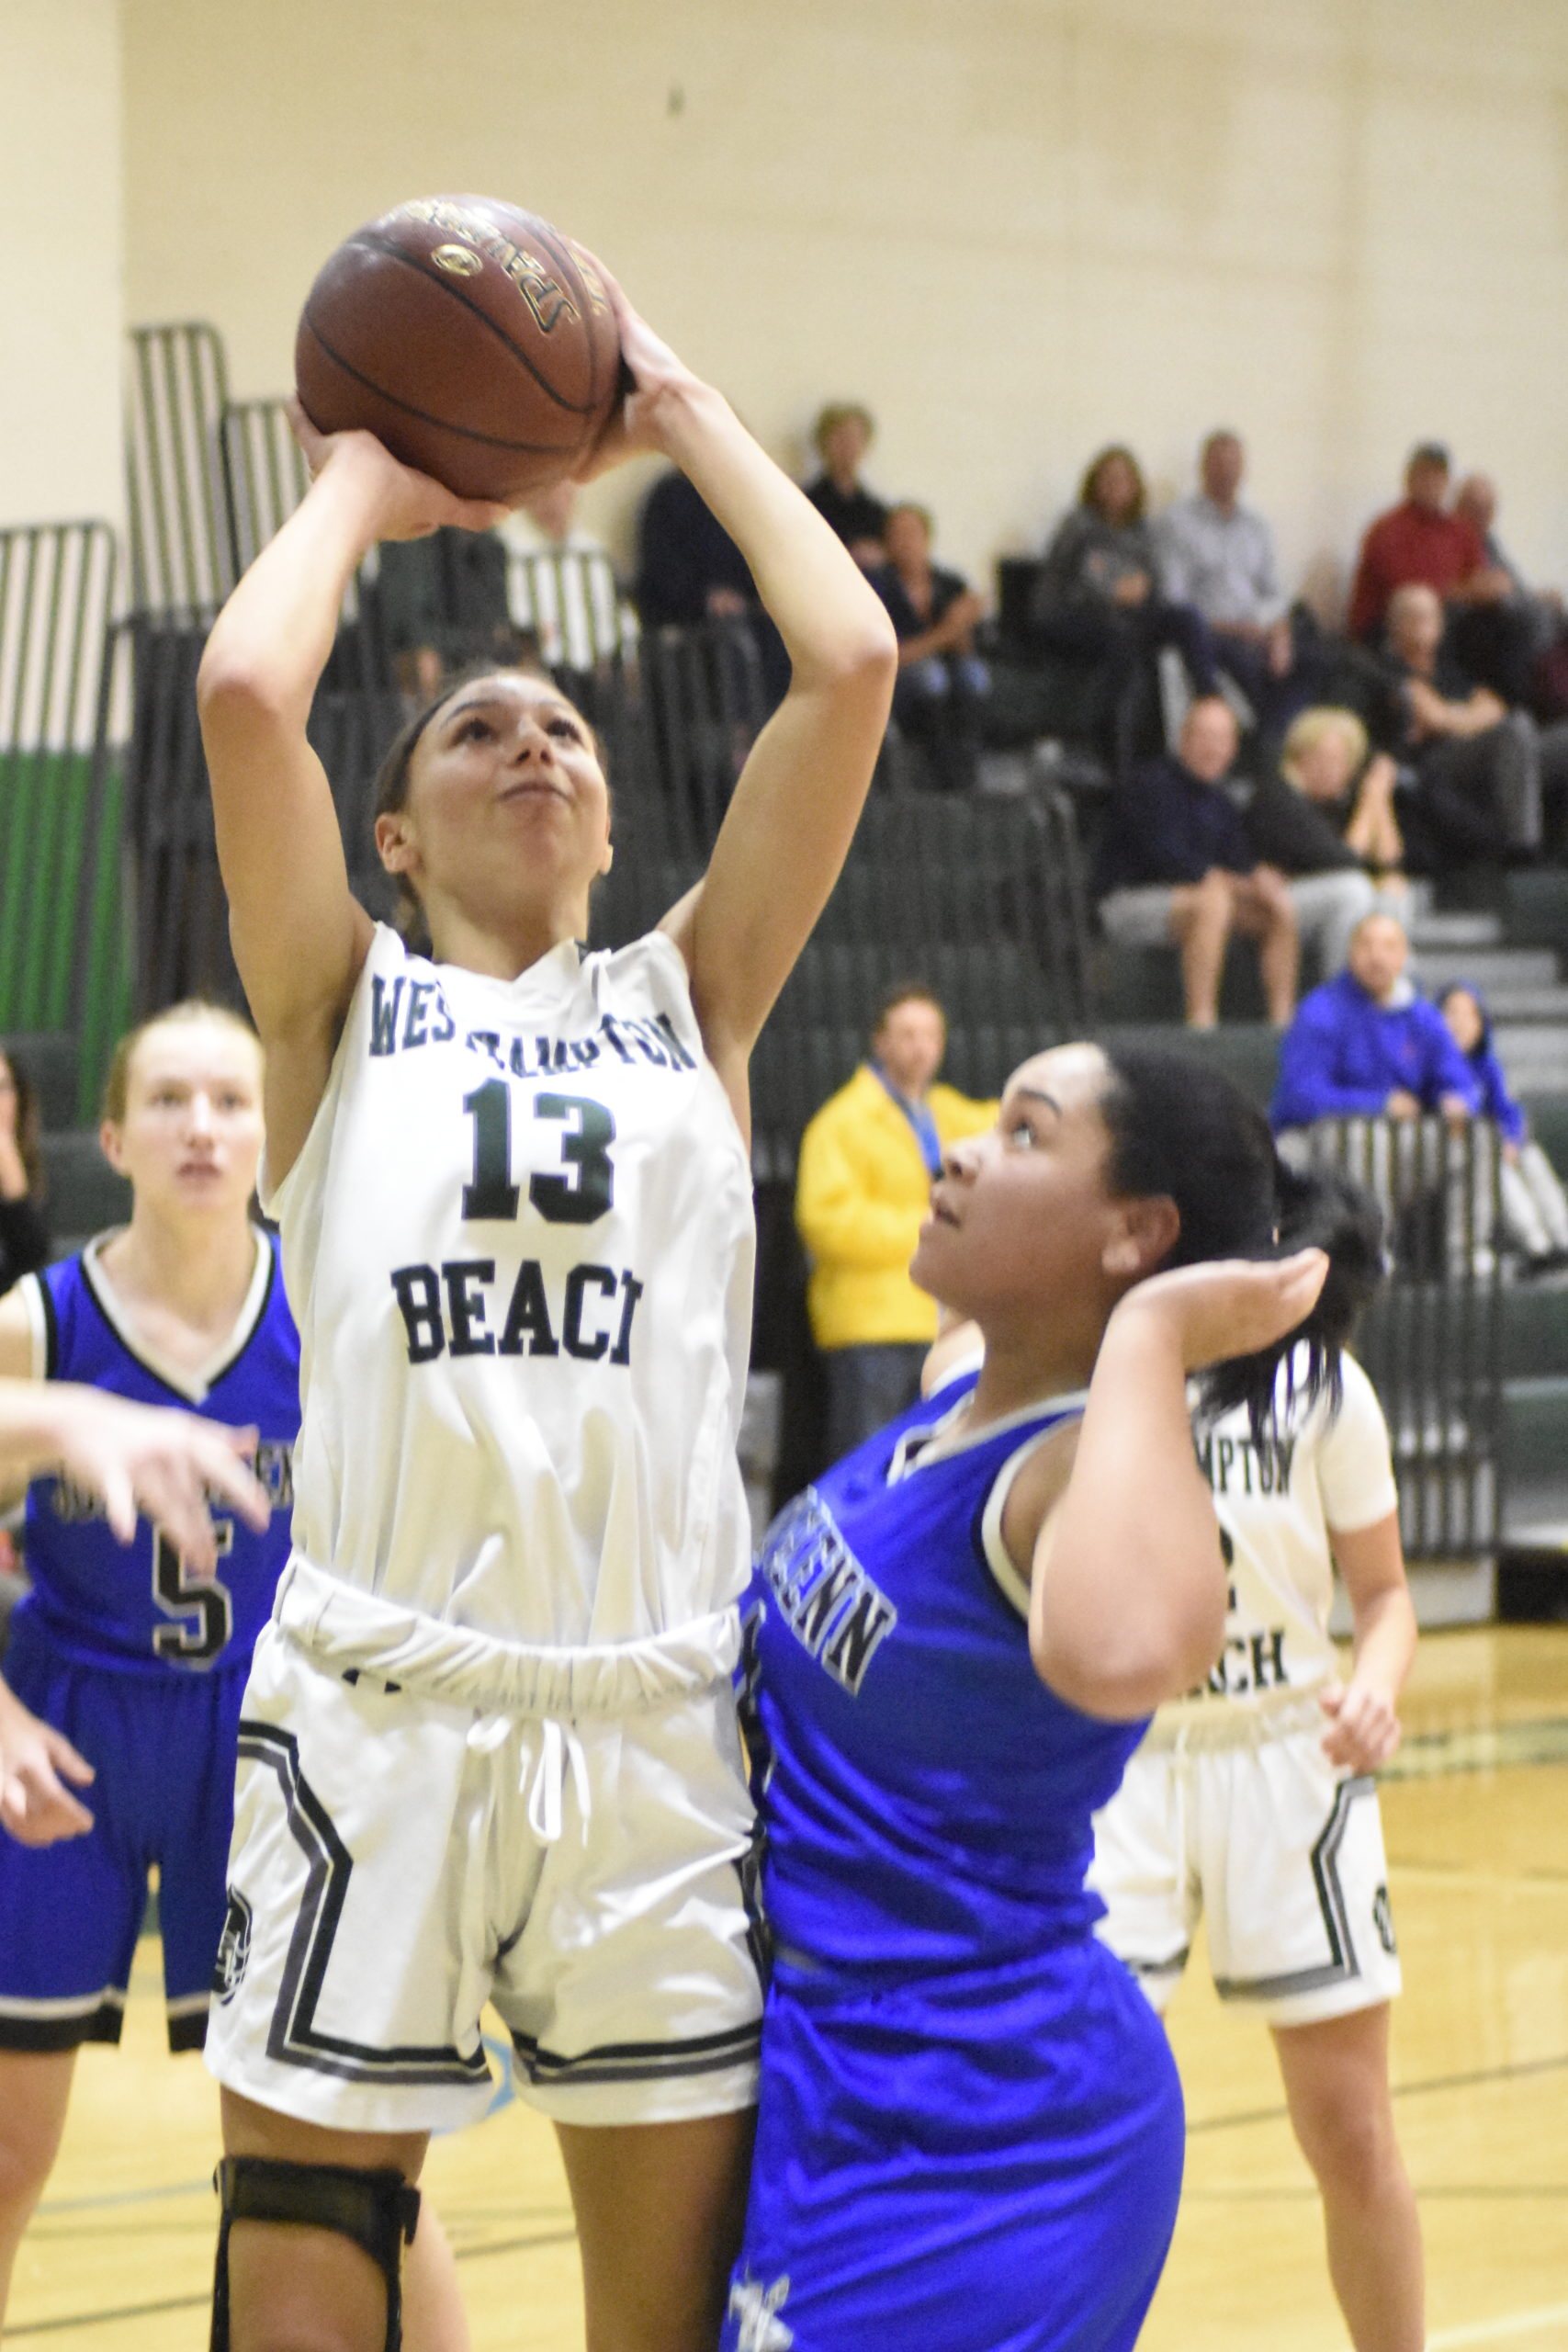 Westhampton Beach senior Layla Mendoza scored a game-high 25 points in a victory over Glenn on Friday.